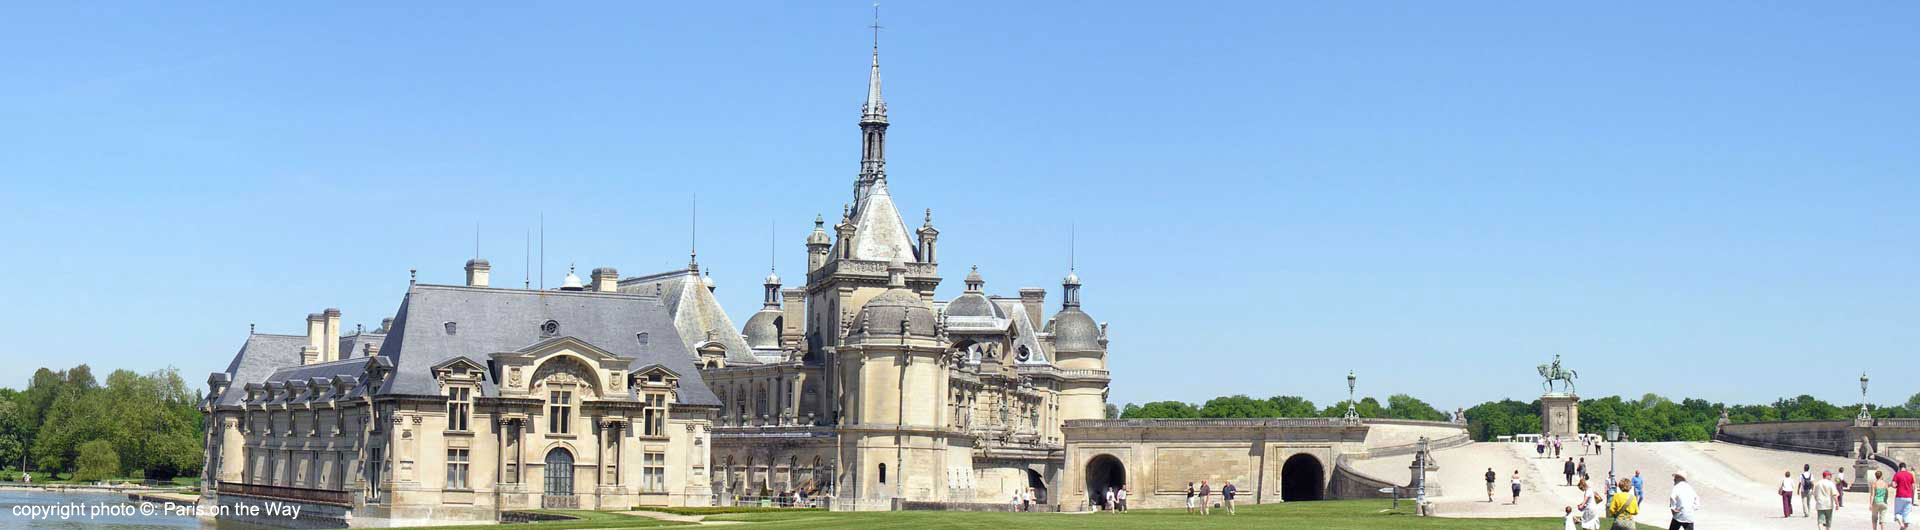 Guided Tour of Chantilly